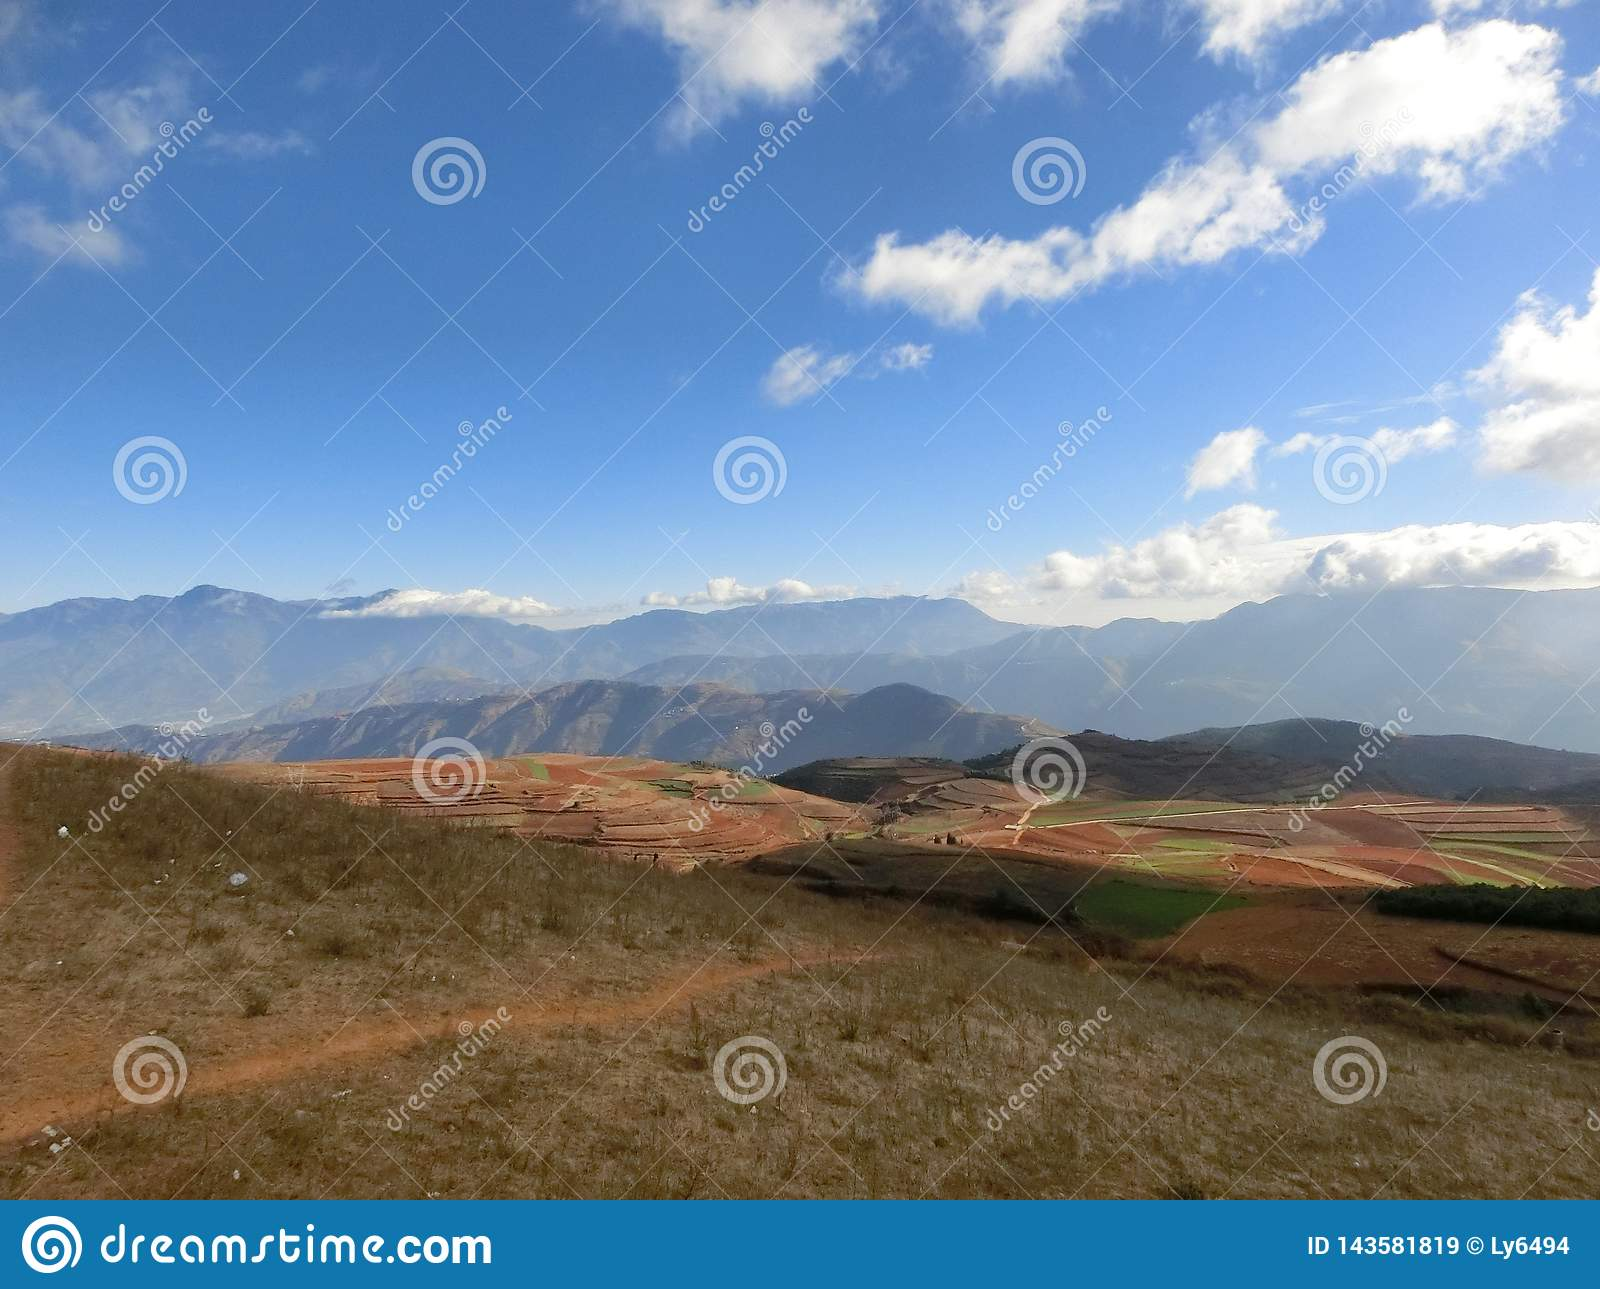 Red soil in YUNNAN, CHINA